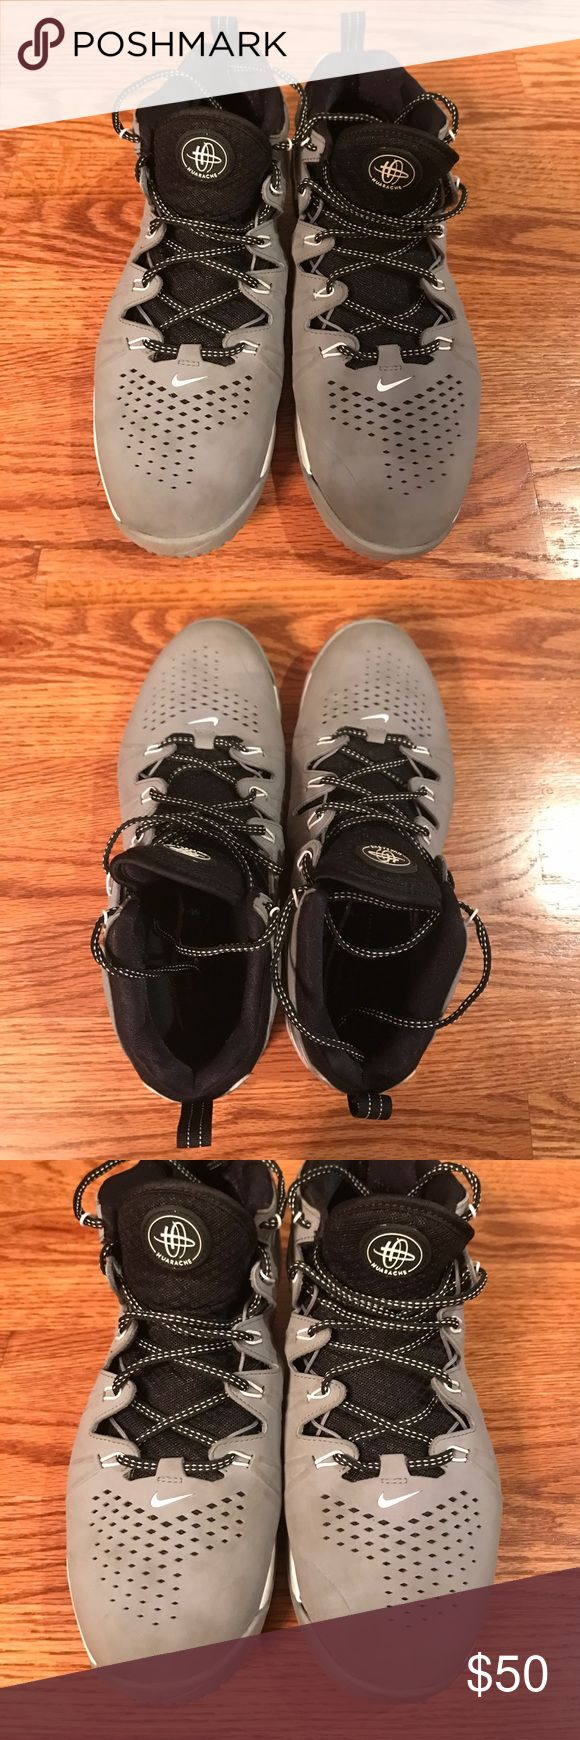 Men's Nike Huarache 4 Turf Shoes Nike Huarache Turf Shoes. White, black, and gray. Slight cuffing on toes, overall good condition! Nike Shoes Athletic Shoes